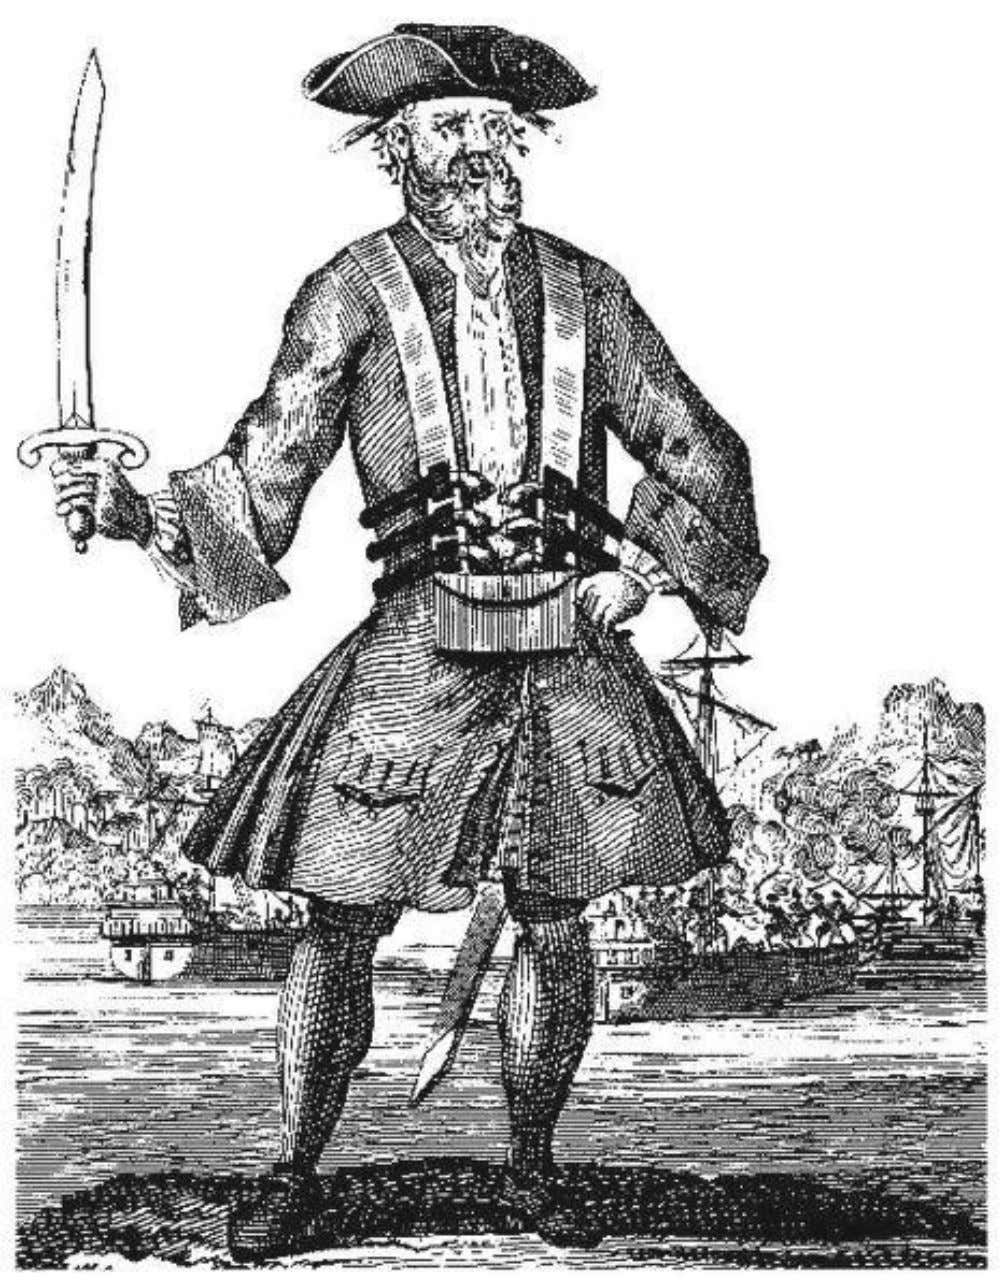 L1, Activity 1 Blackbeard (c. 1680-1718) Also known as Edward Teach. Notorious Golden Age pirate renowned